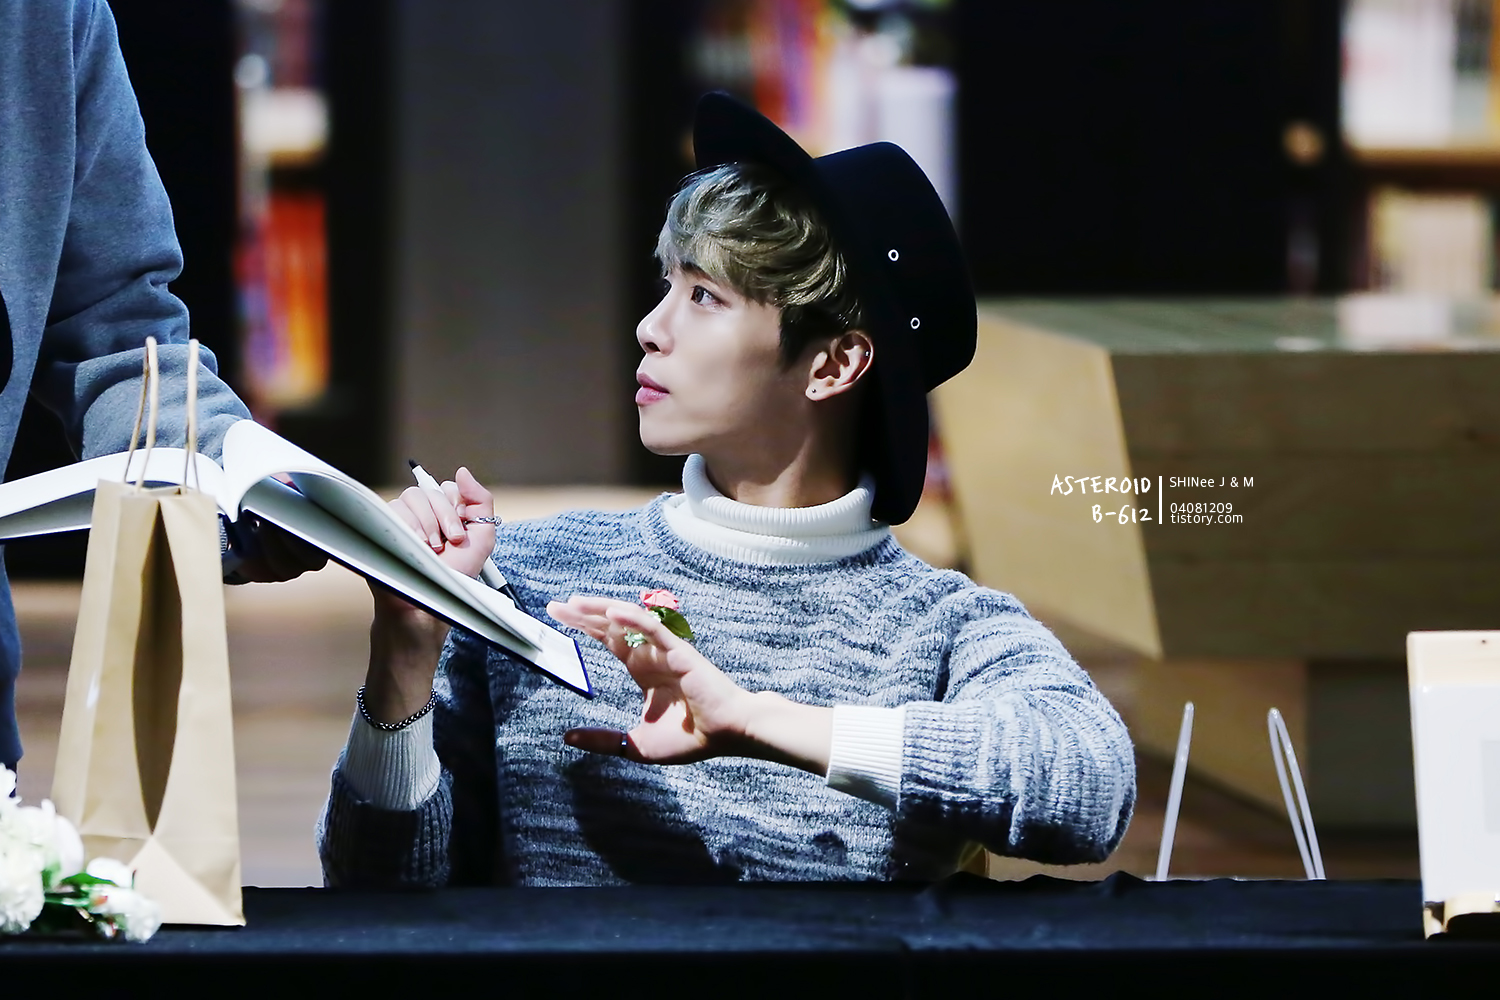 151121 Jonghyun @ 'Skeleton Flower' - Evento Fansign. 265A964A5650BAD9181141